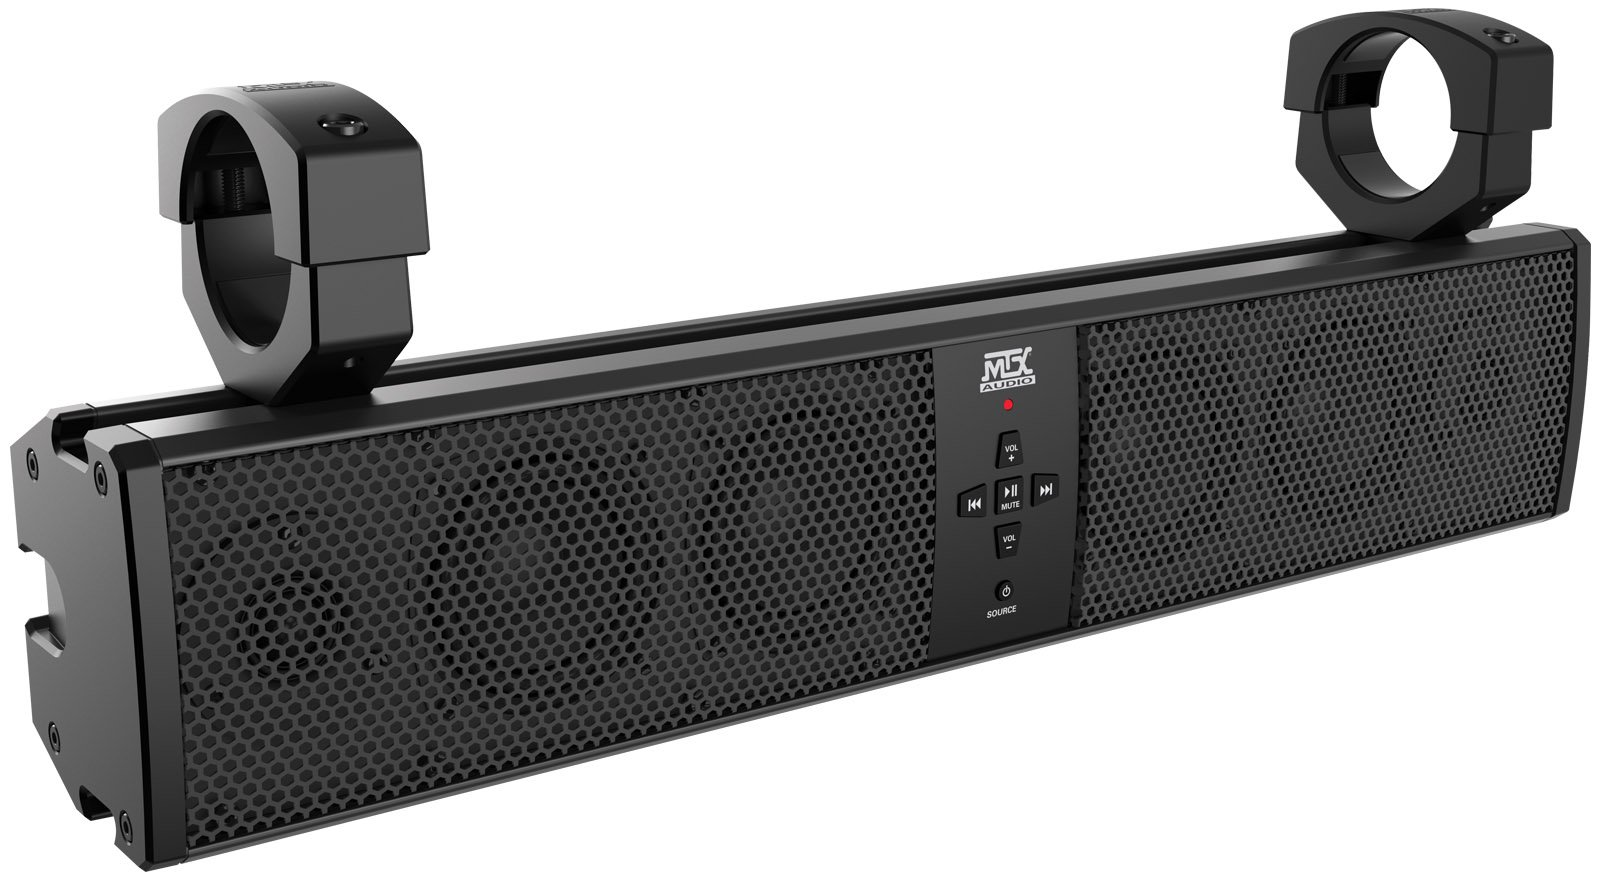 MUD6SPBT Universal 6 Speaker All Weather Sound Bar for Boats, Bikes & ORV - by MTX